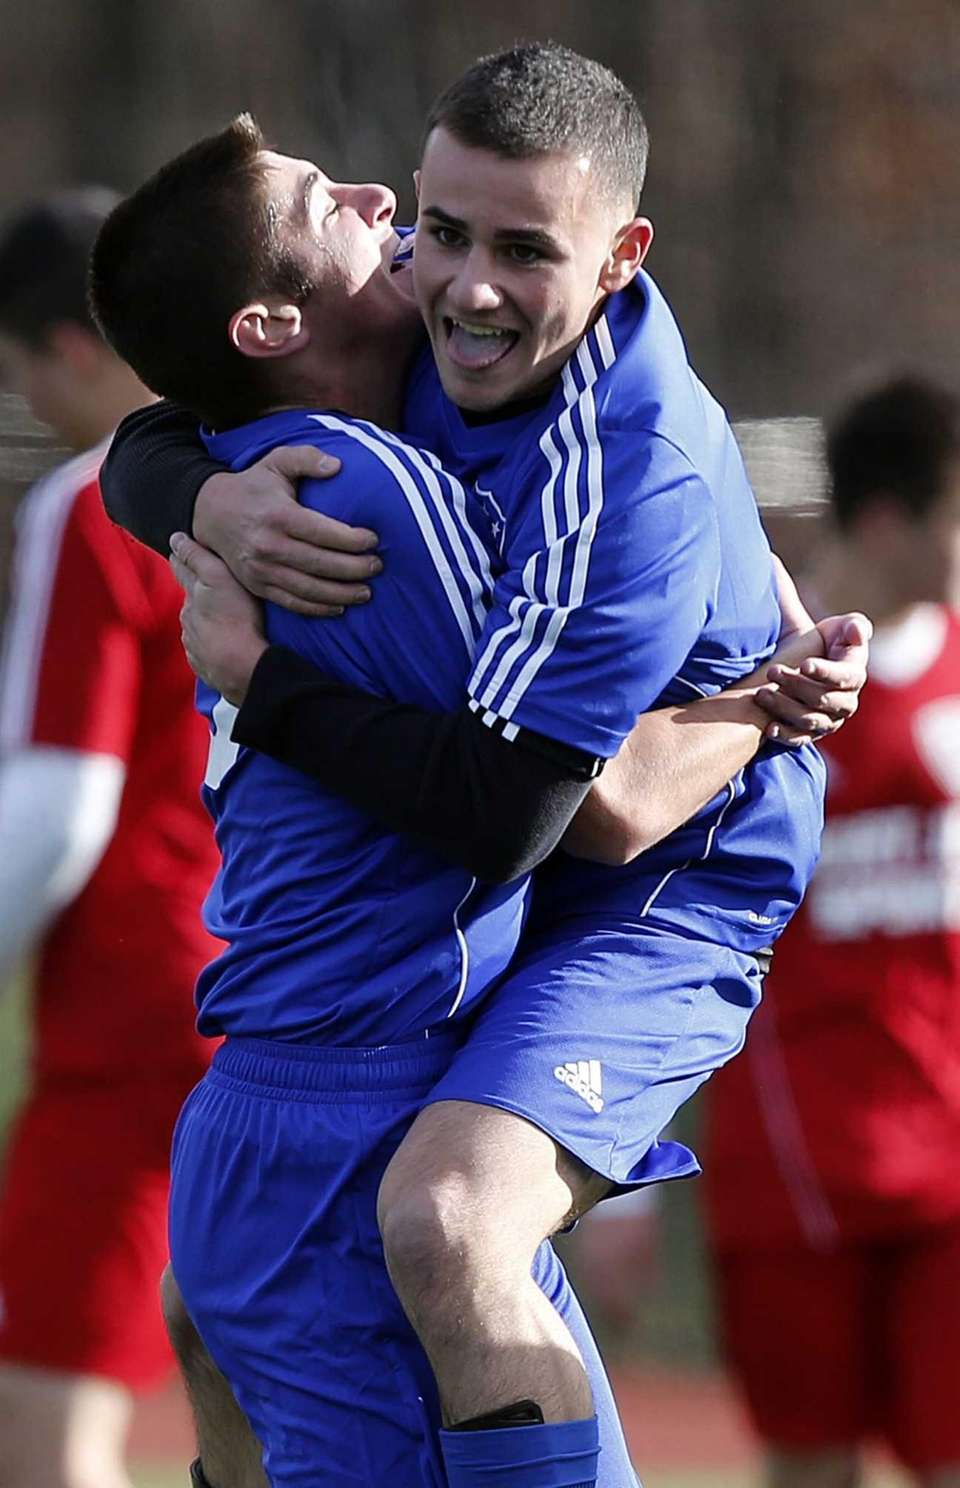 Nassau's Gino Dcardino is hugged by teammate Joe